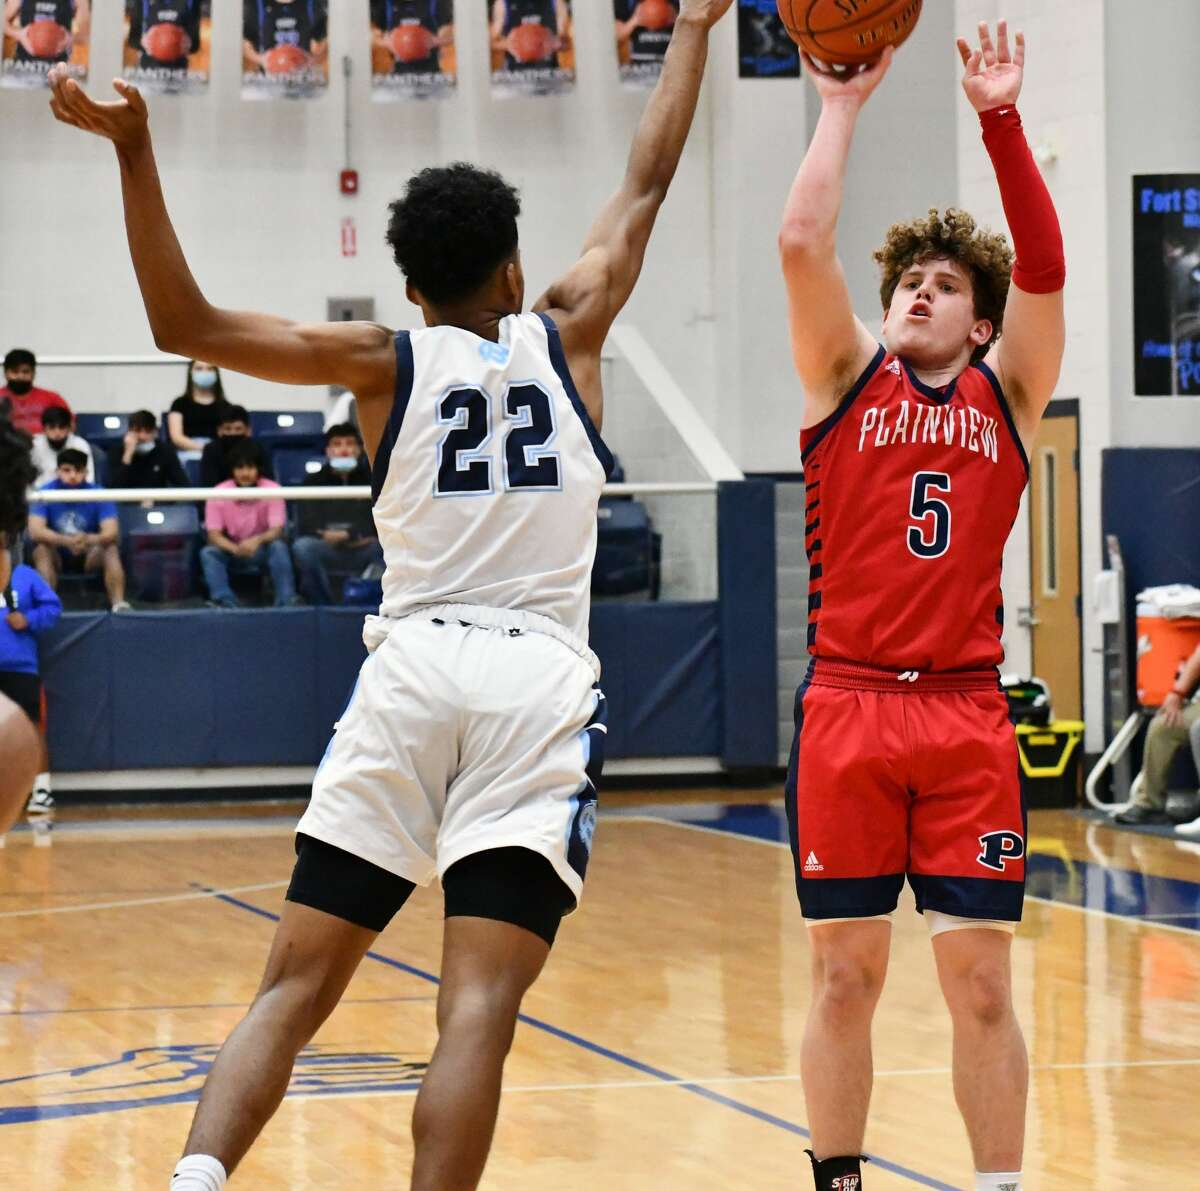 Senior Austin Hauk closed his career with a 20-point effort for the Bulldogs in their 79-67 loss to El Paso Chapin in the area round of the Class 5A boys basketball playoffs on Monday at Fort Stockton.